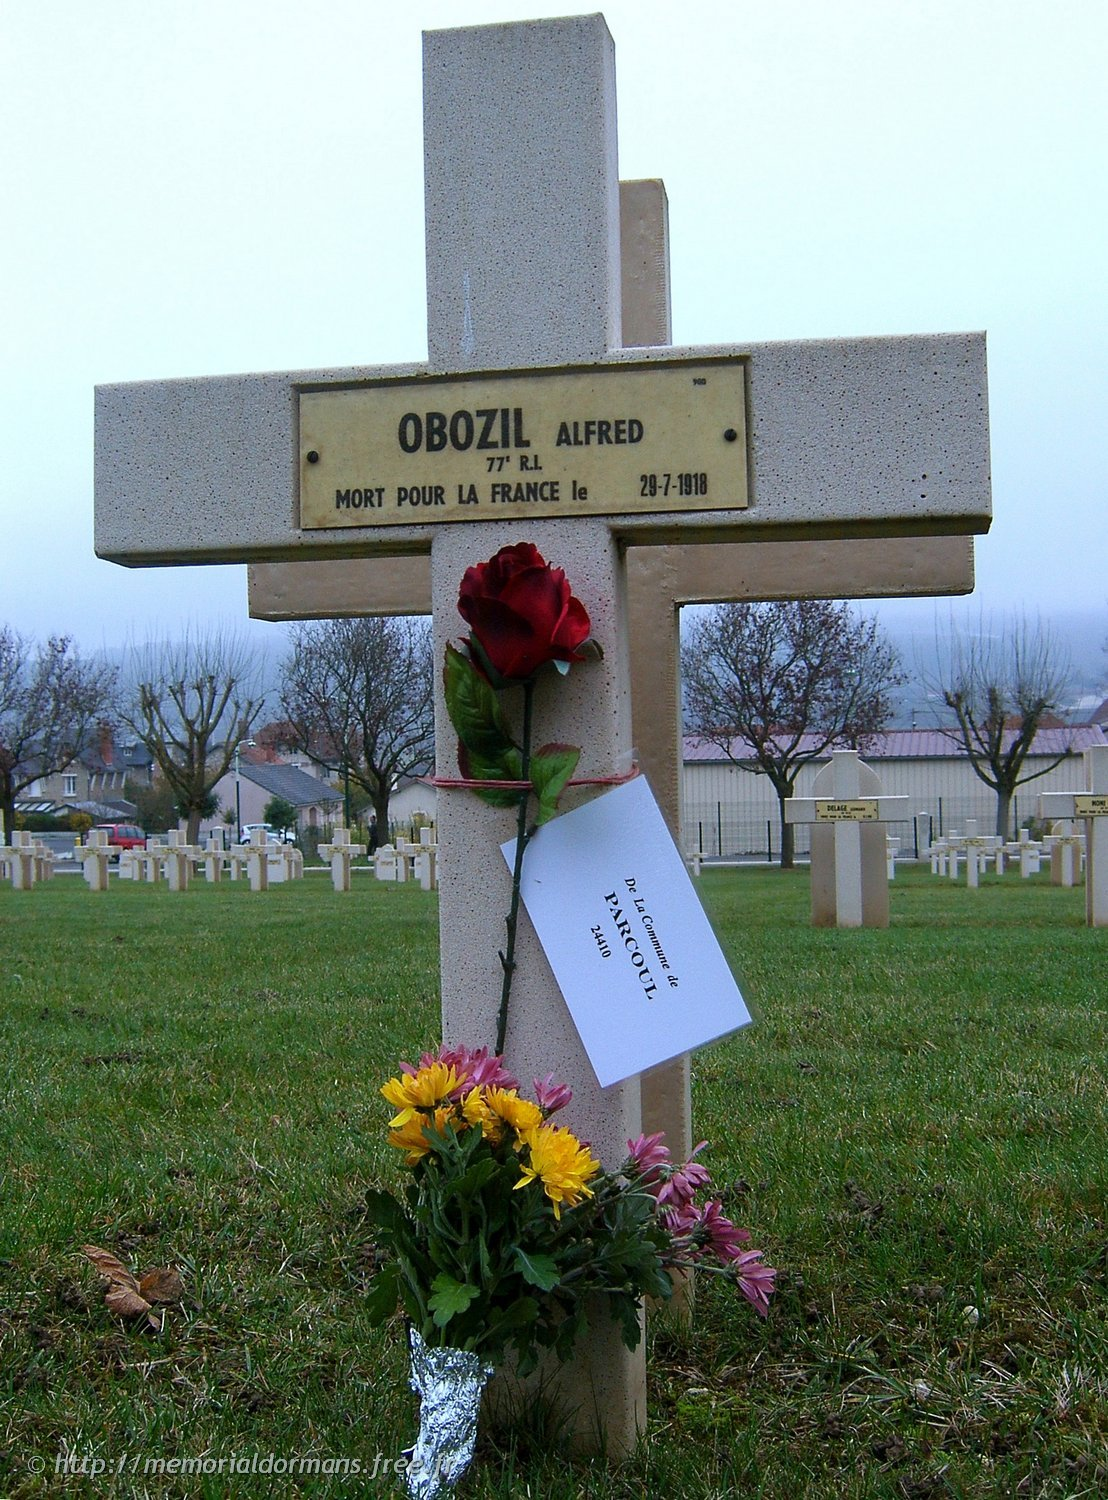 http://memorialdormans.free.fr/Un11novembreFleuri_Images/Obozil%20Alfred.JPG